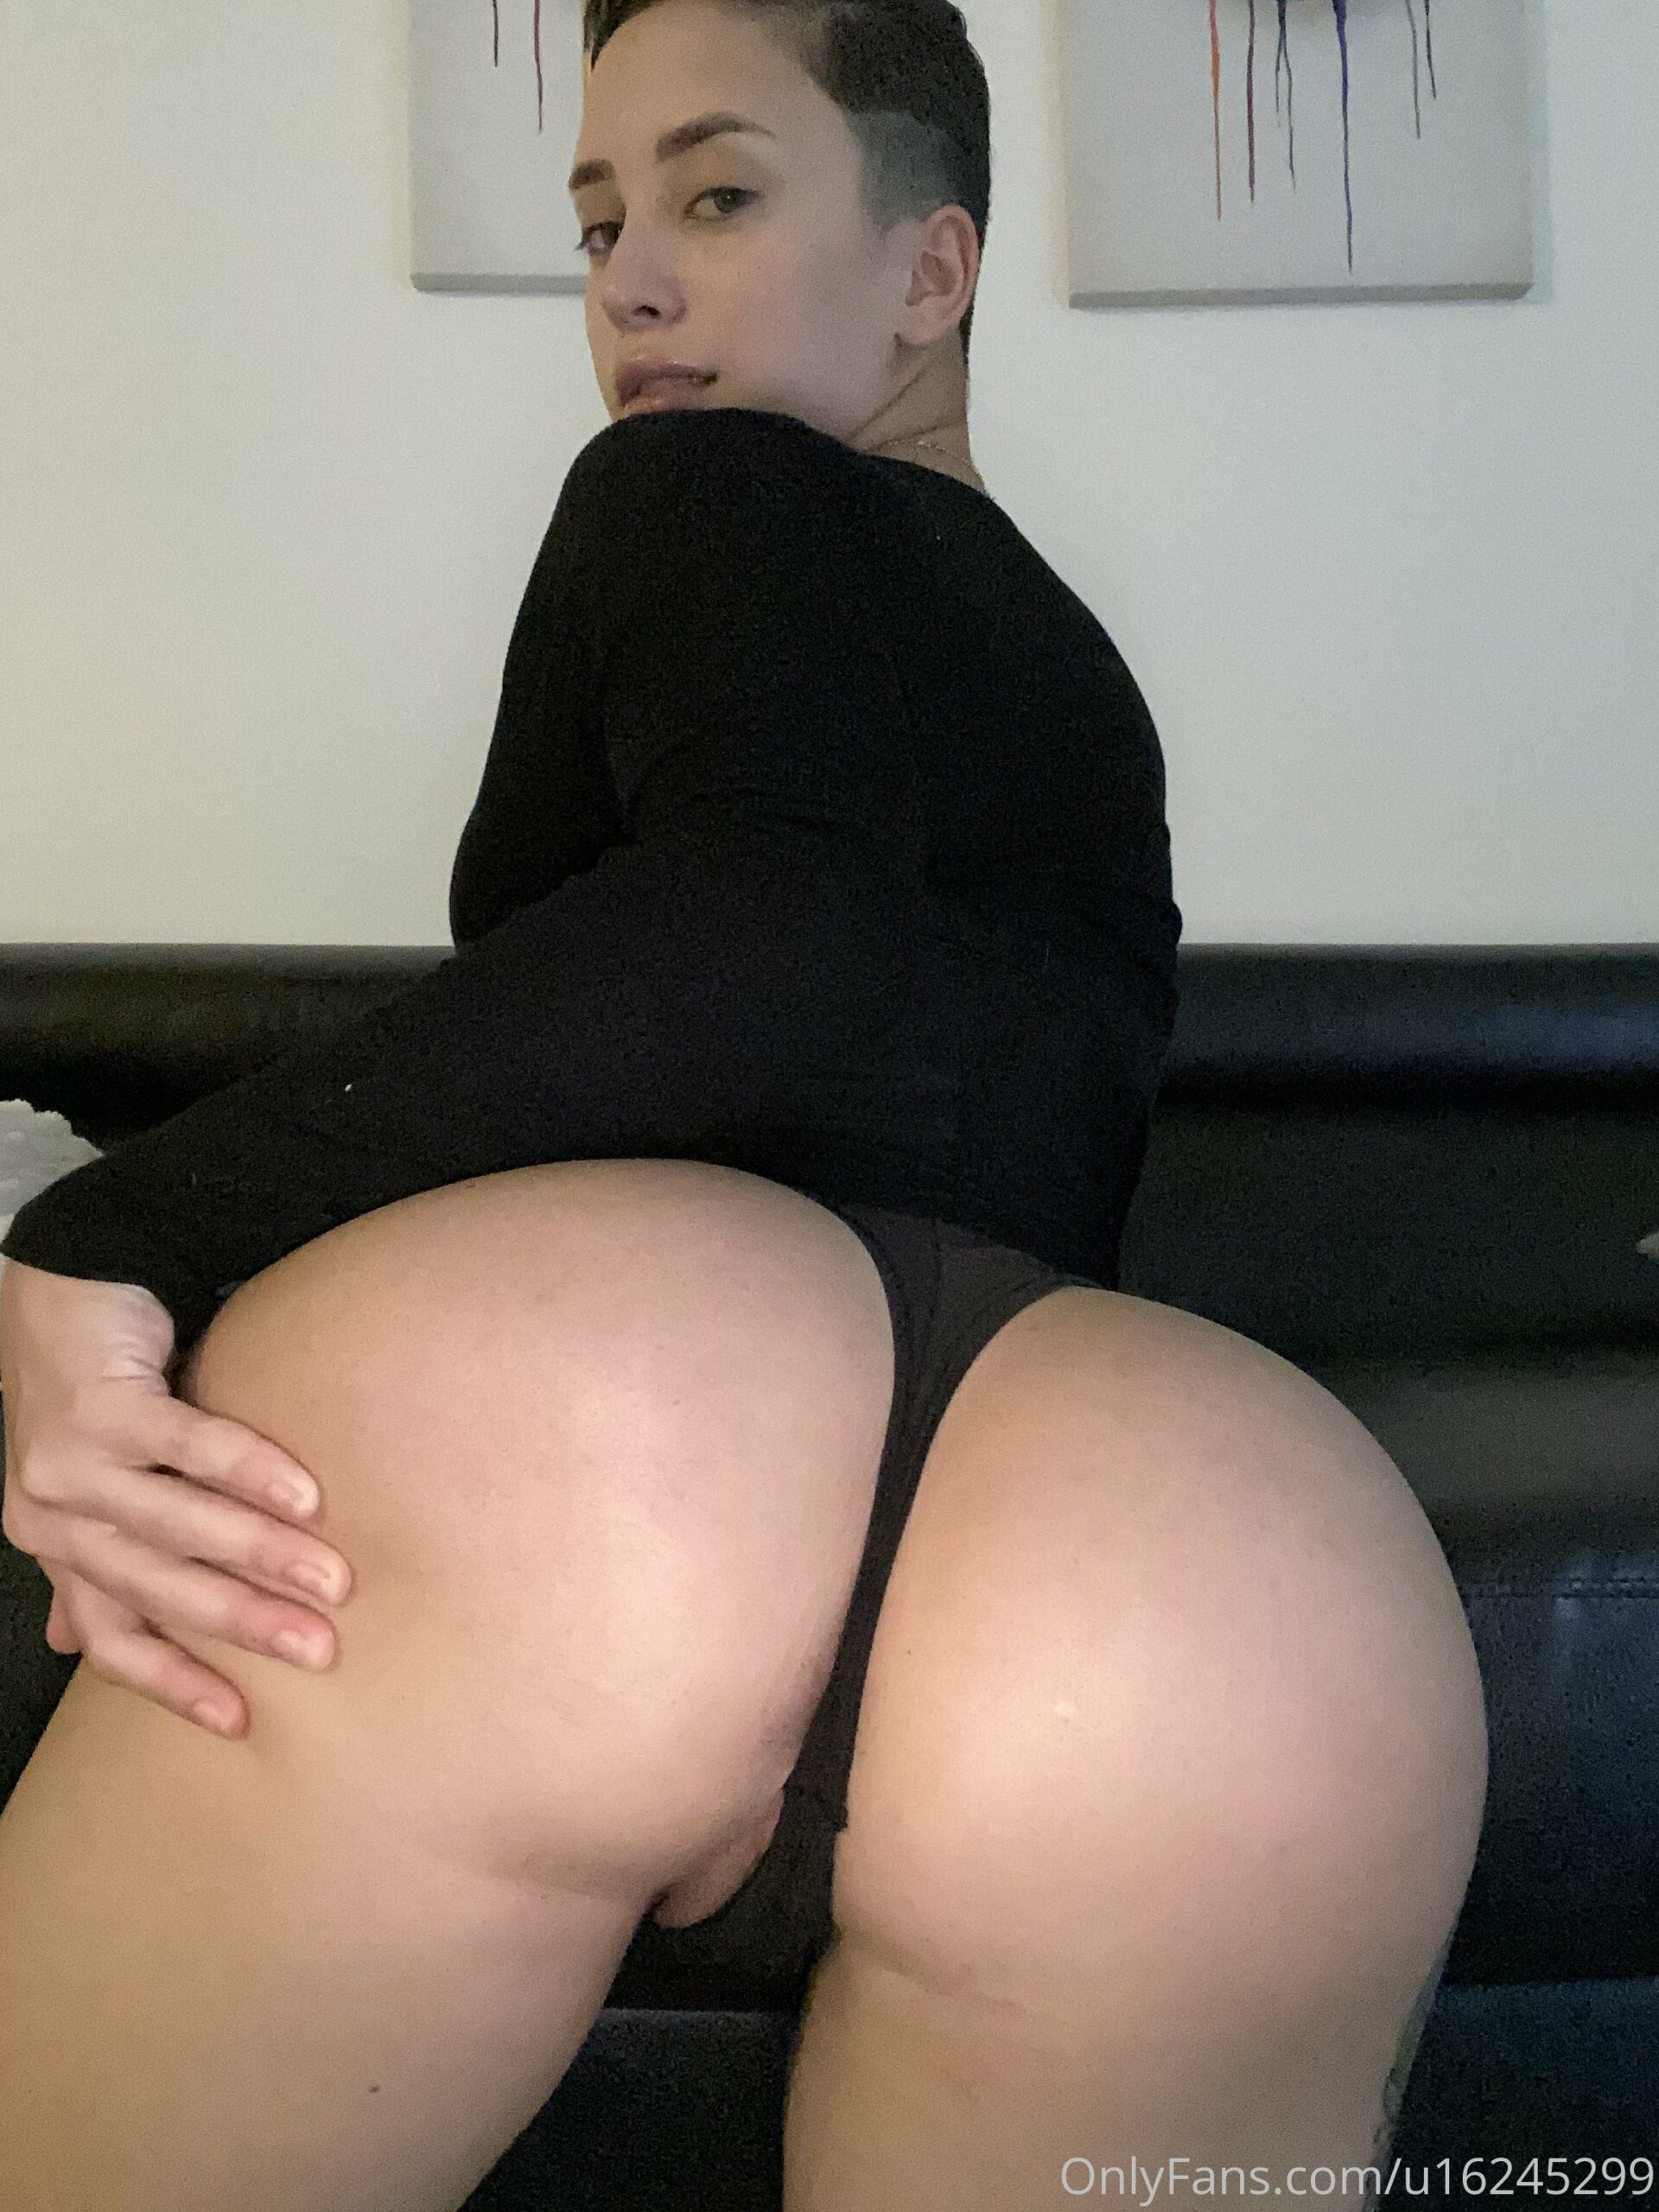 Veronica Perasso Porn OnlyFans Leaked Nudes 51